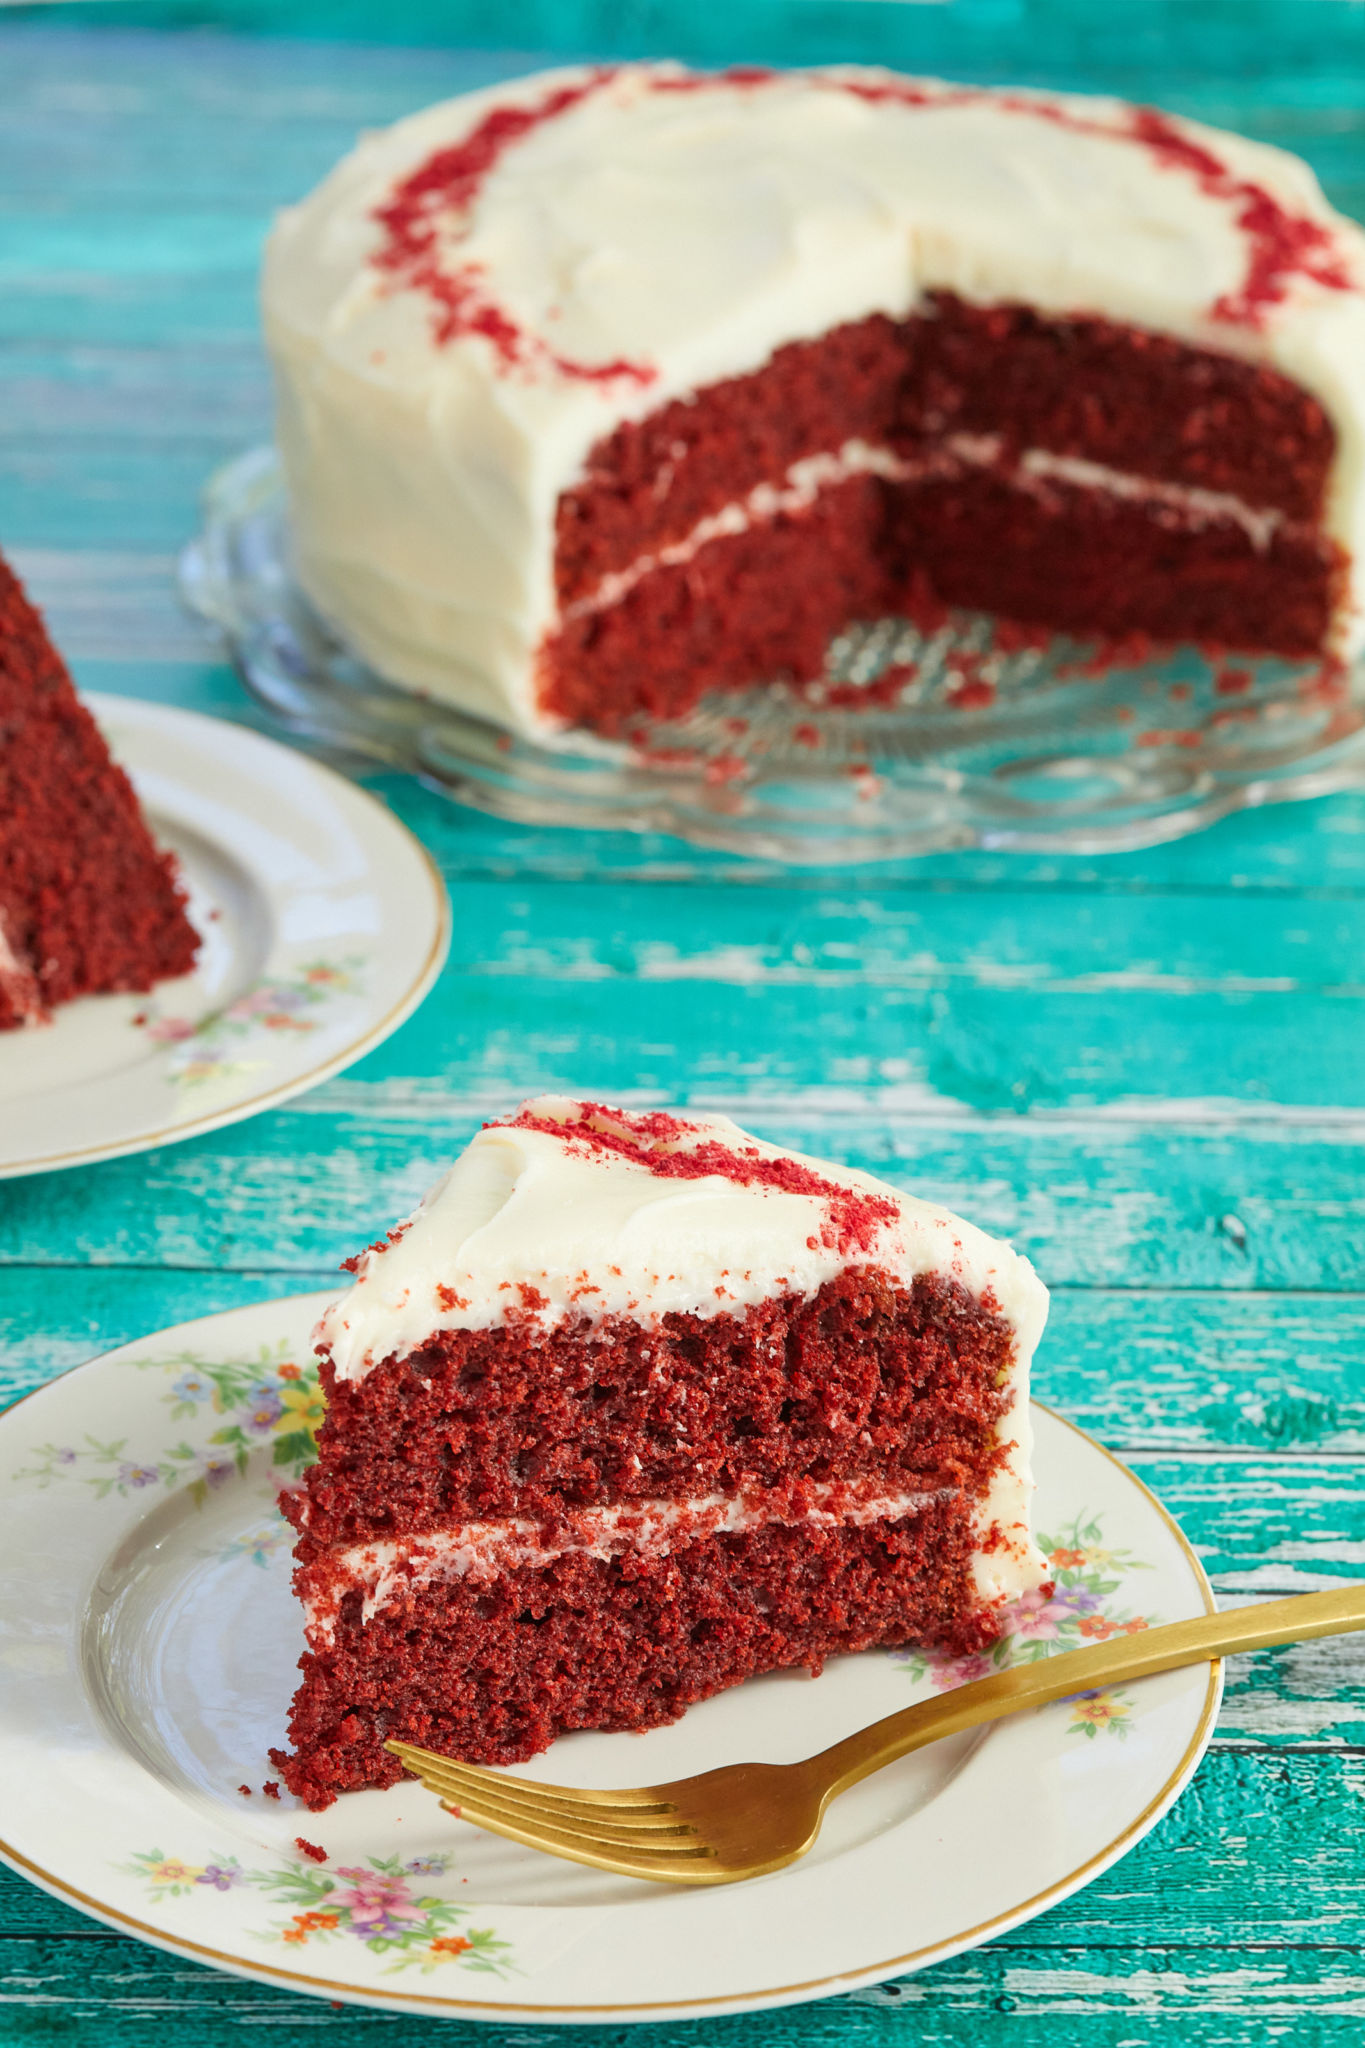 A slice of my moist Best-Ever Red Velvet Cake recipe, topped with ermine frosting.